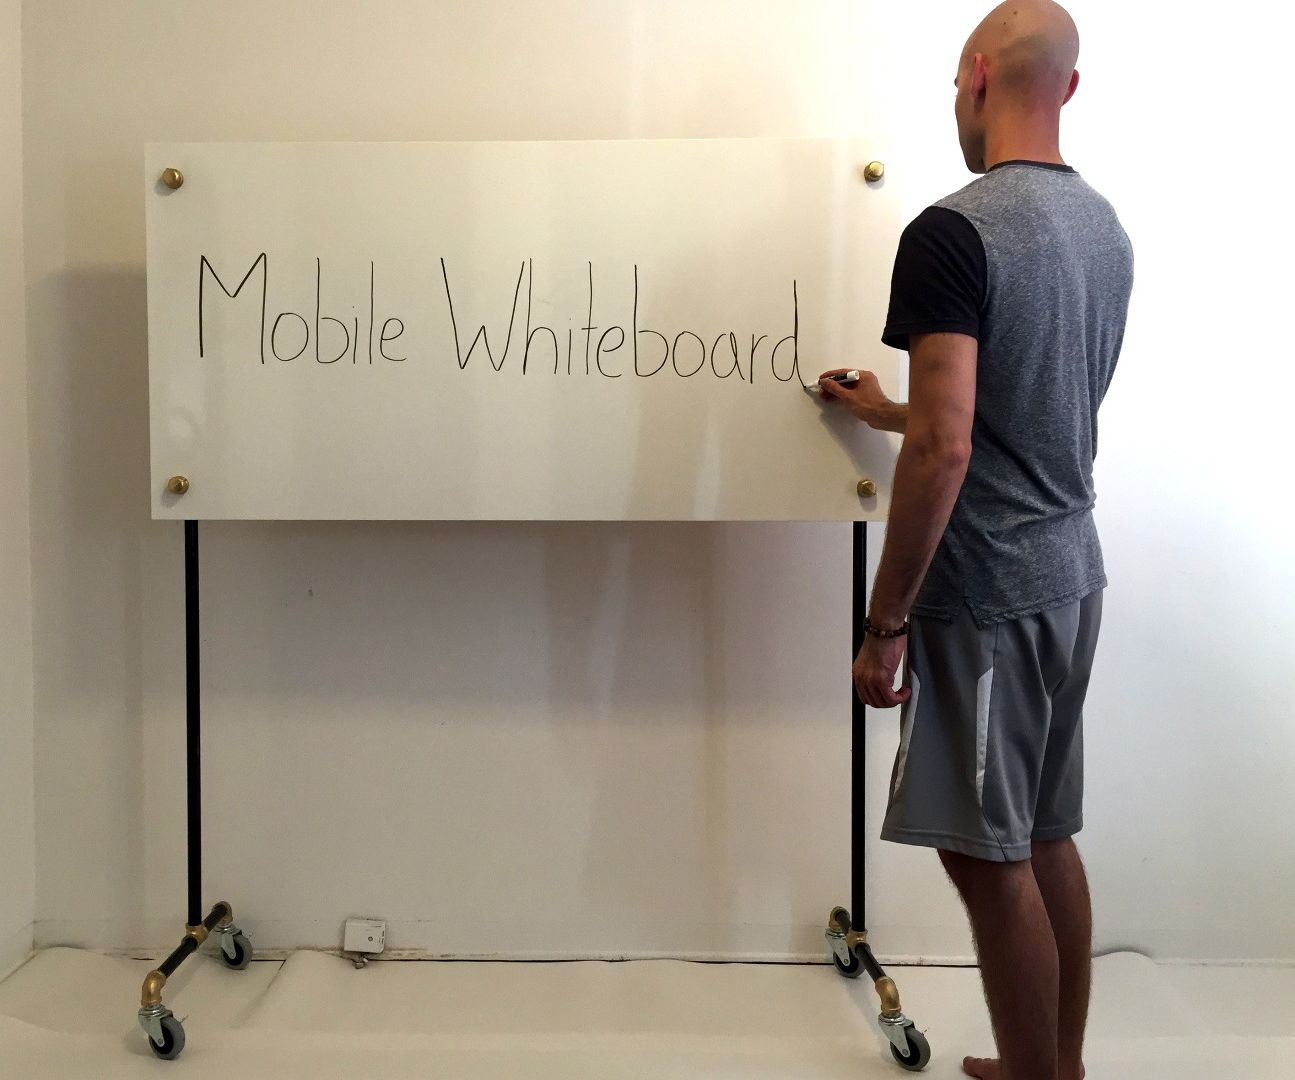 Ikea Hack Mobile Whiteboard 5 Steps With Pictures Instructables